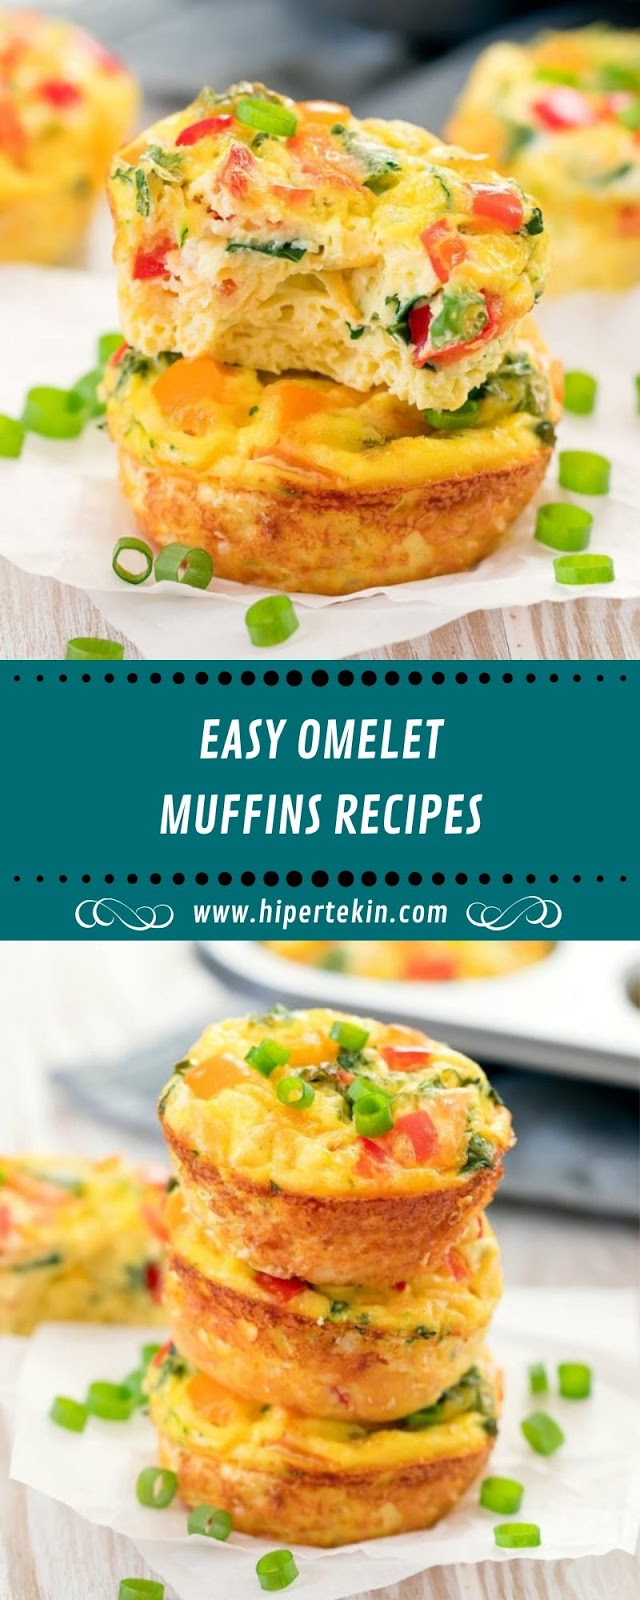 EASY OMELET MUFFINS RECIPES